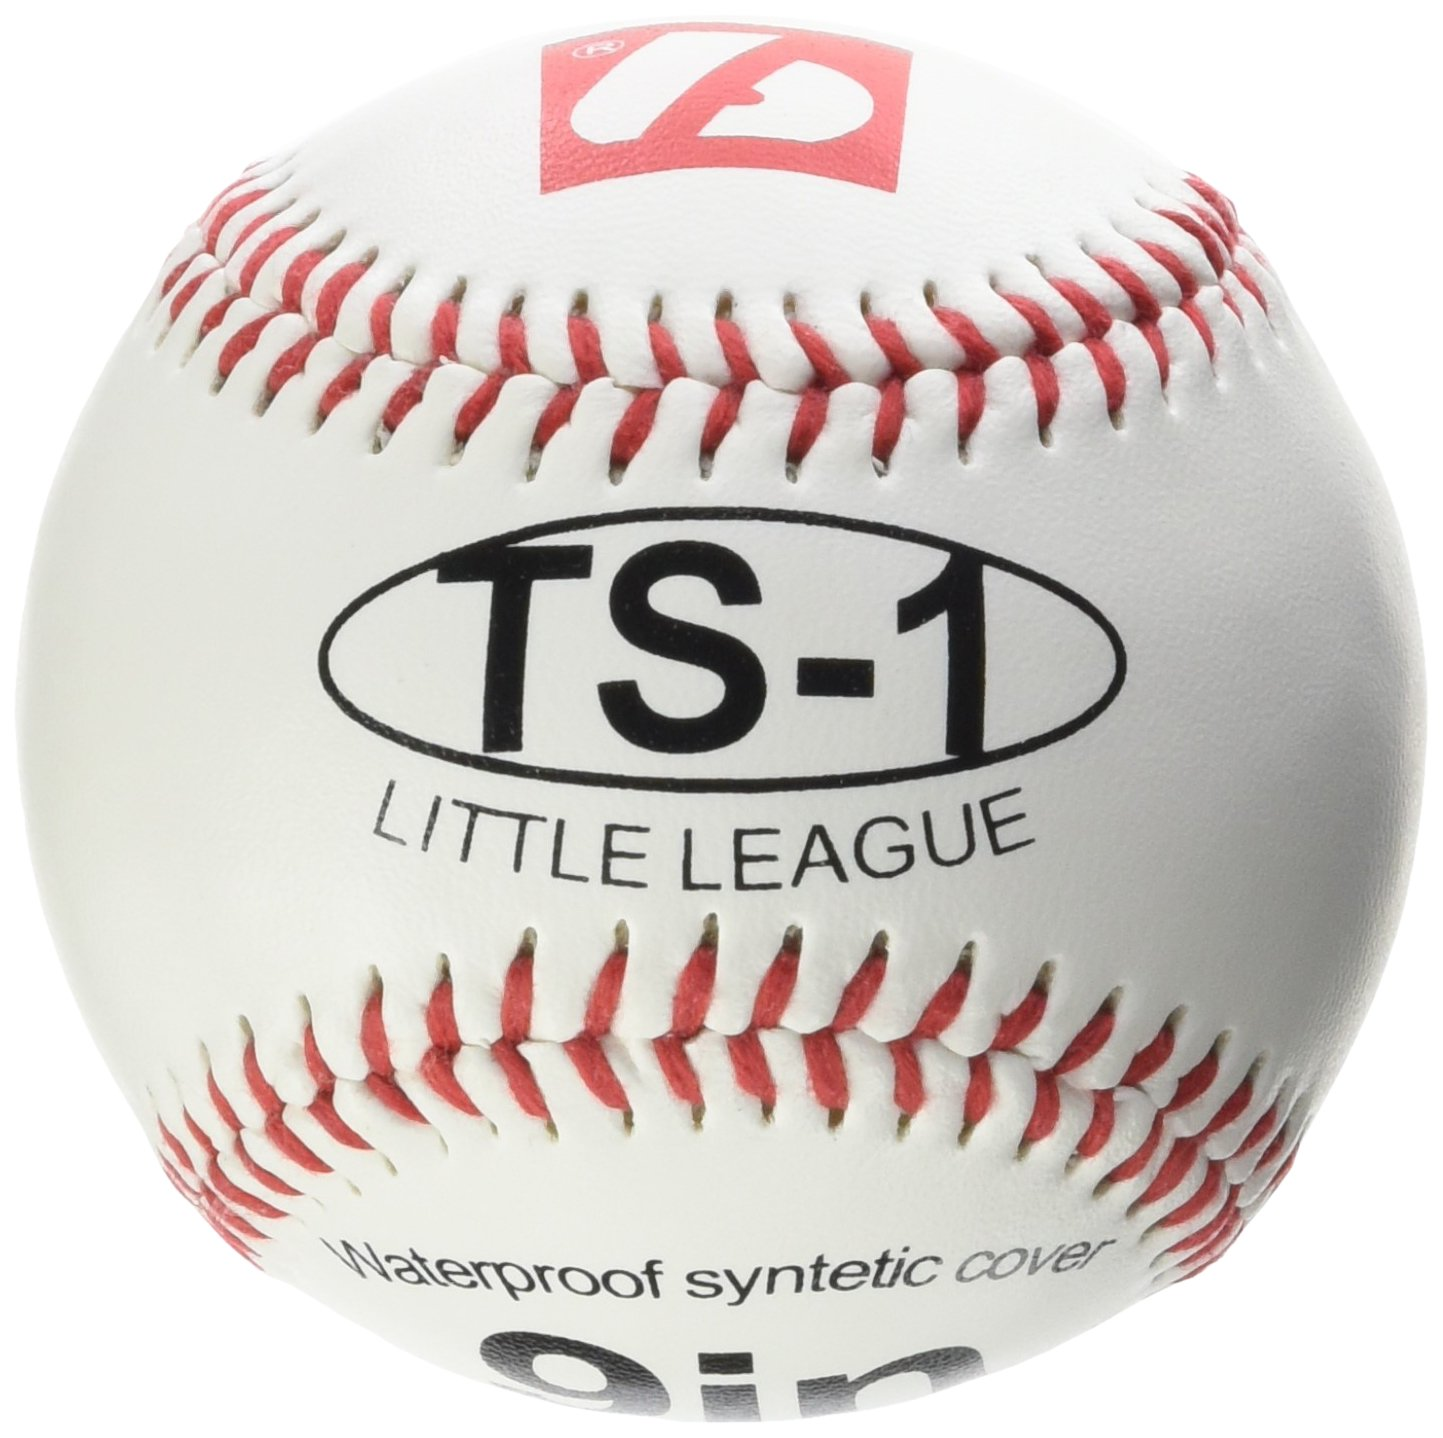 barnett TS-1 practice baseball ball, size 9, 2 pieces, white. size 9